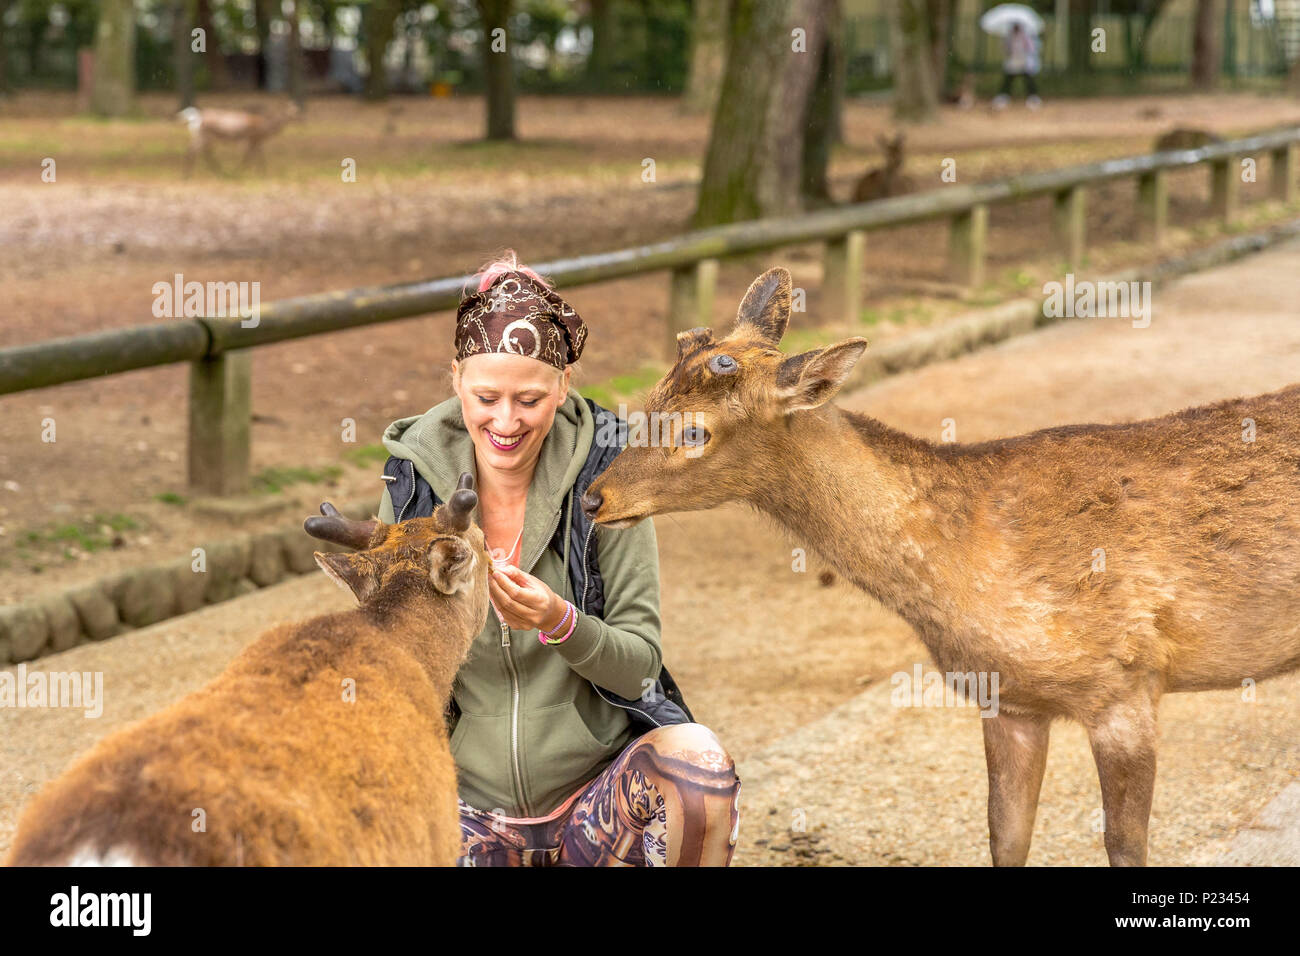 Two Nara deer harassing tourists for food in the park of Nara, Unesco Heritage town. Tourism and travel in Japan. - Stock Image